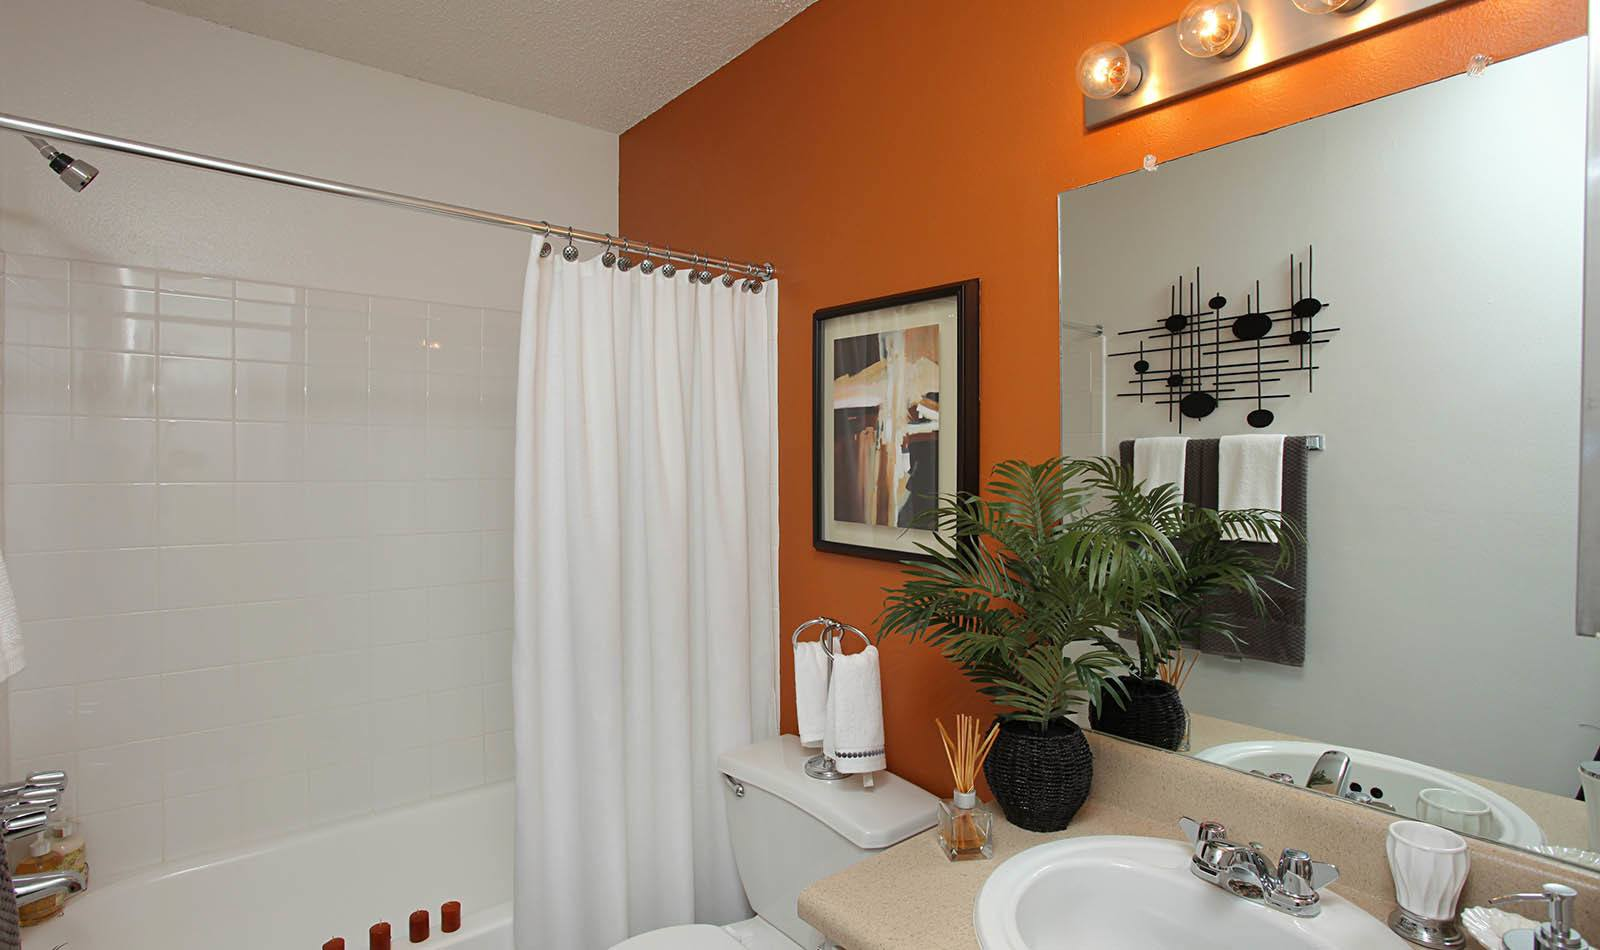 Bathroom at Coopers Pond Apartments in Tampa, FL